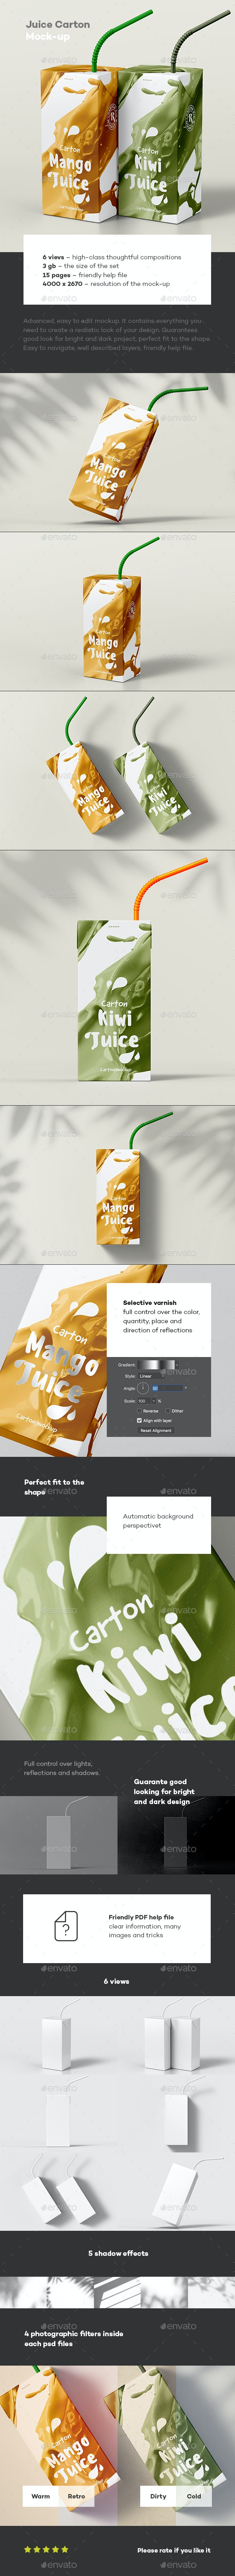 Juice Carton Mock-up - Food and Drink Packaging